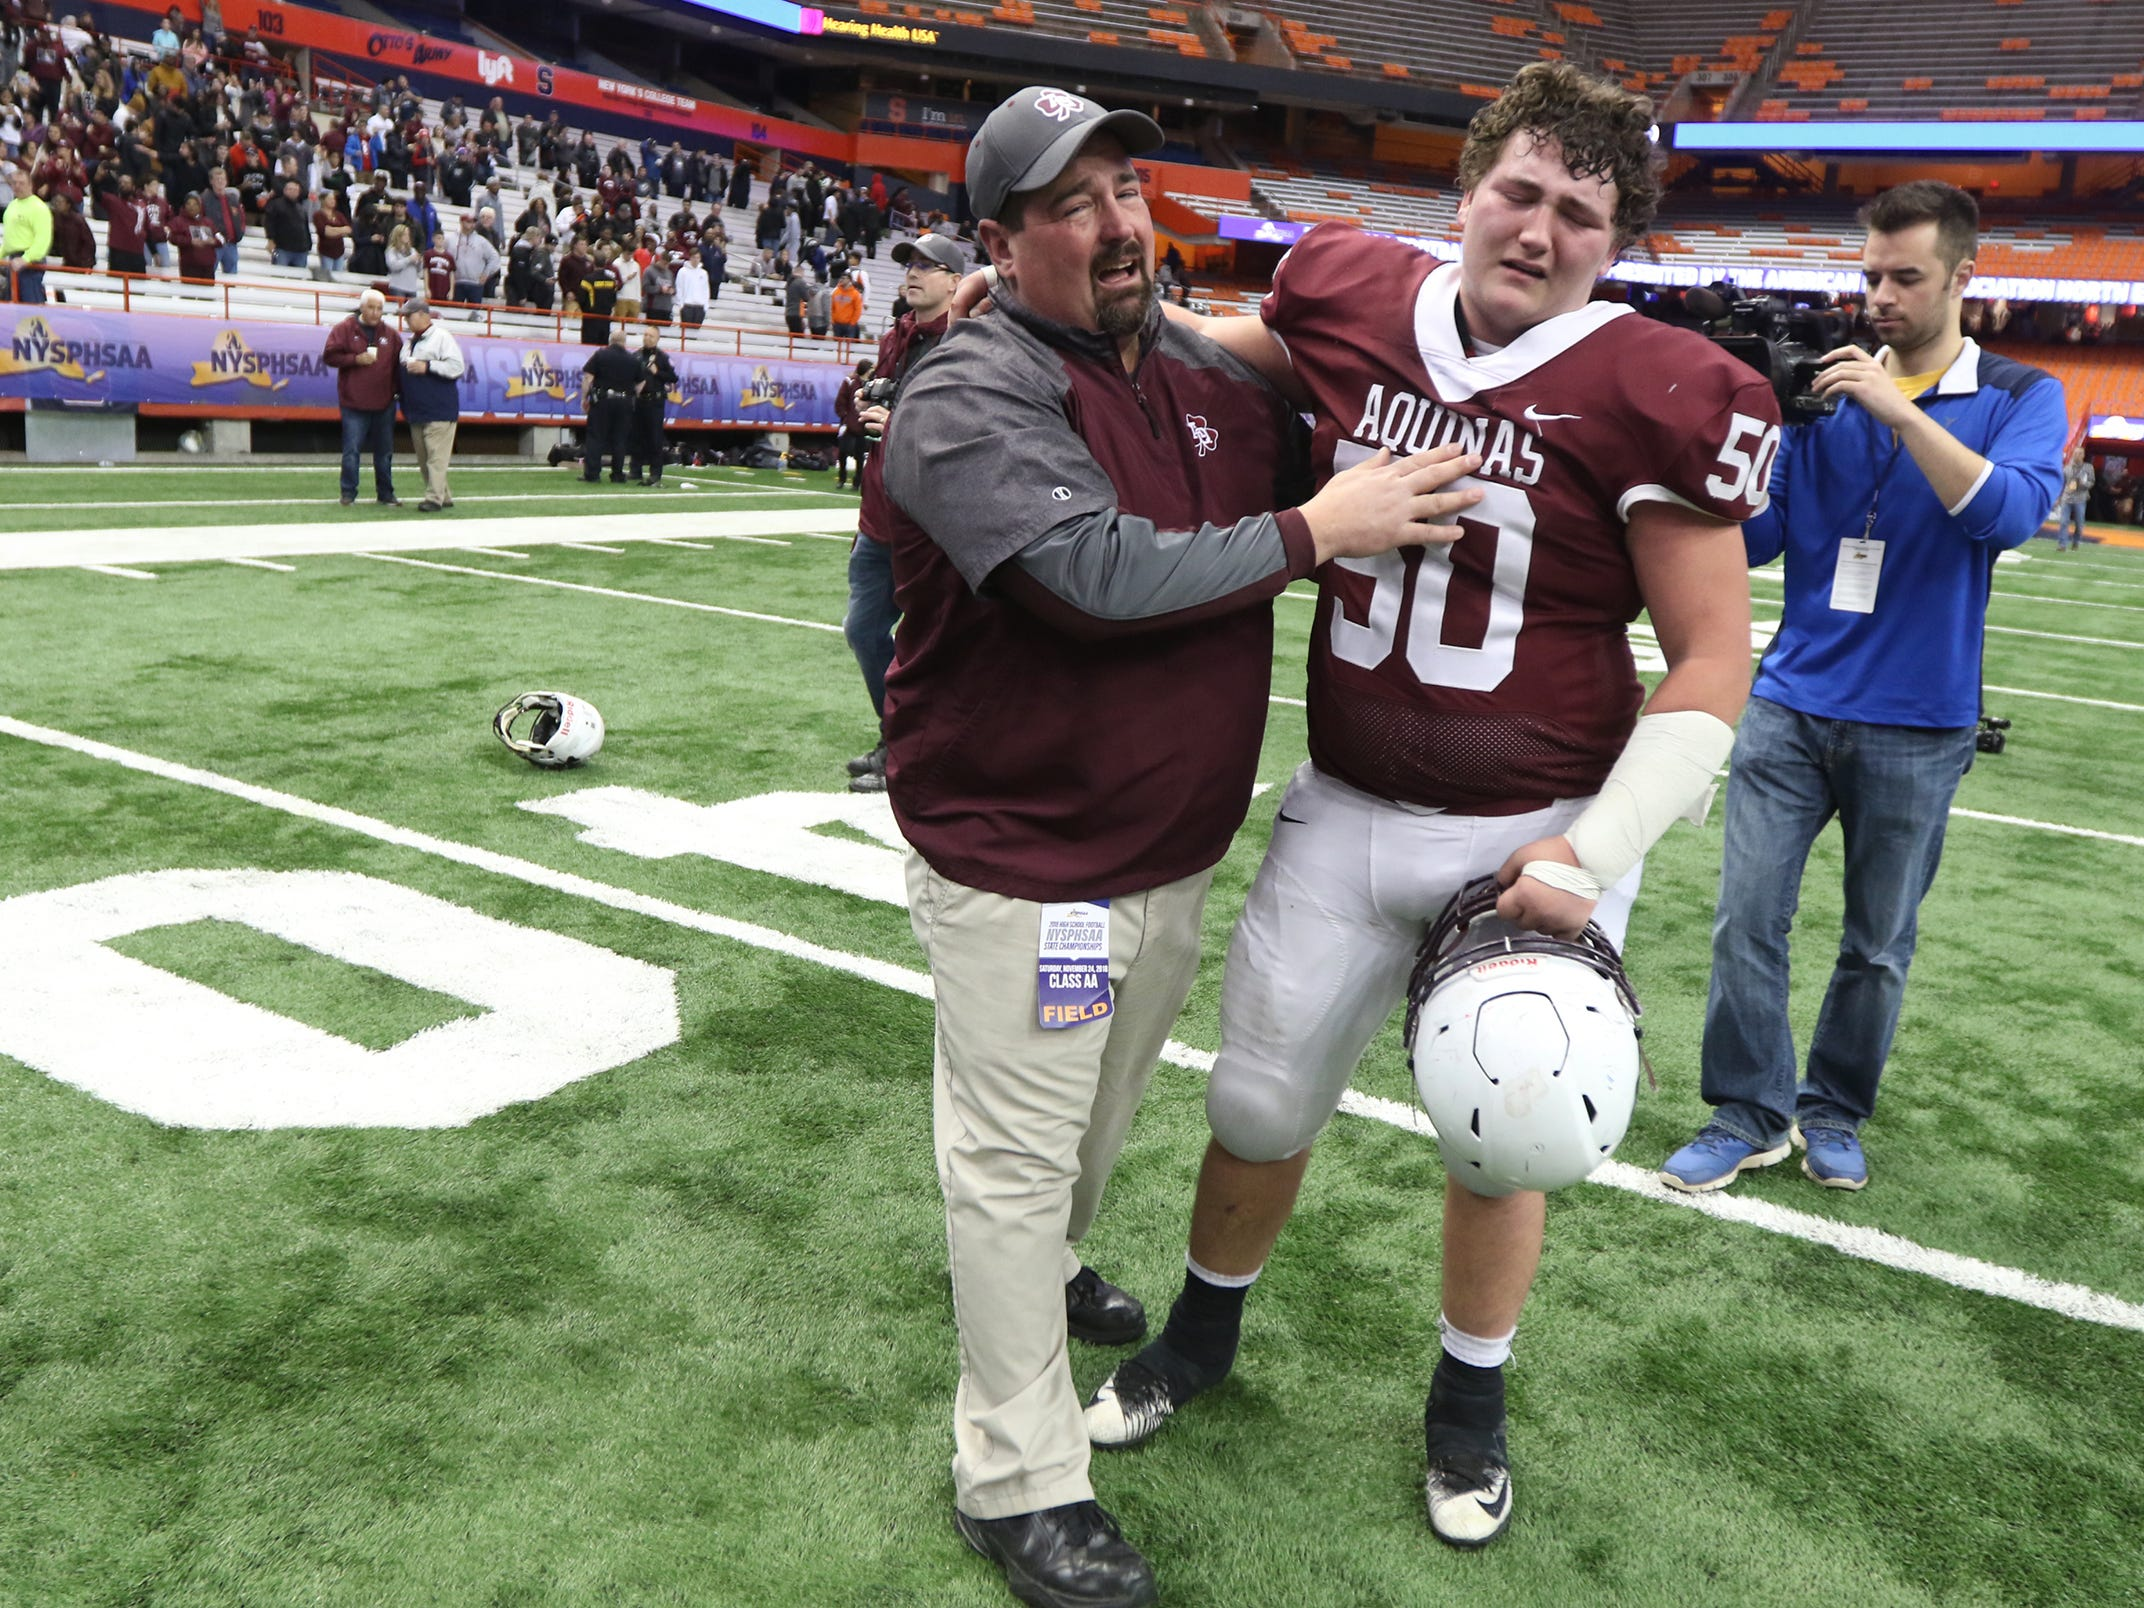 Aquinas Head Coach Derek Annechino and his son, Nick, who is a senior on the team, cry and celebrate the team's victory Saturday.